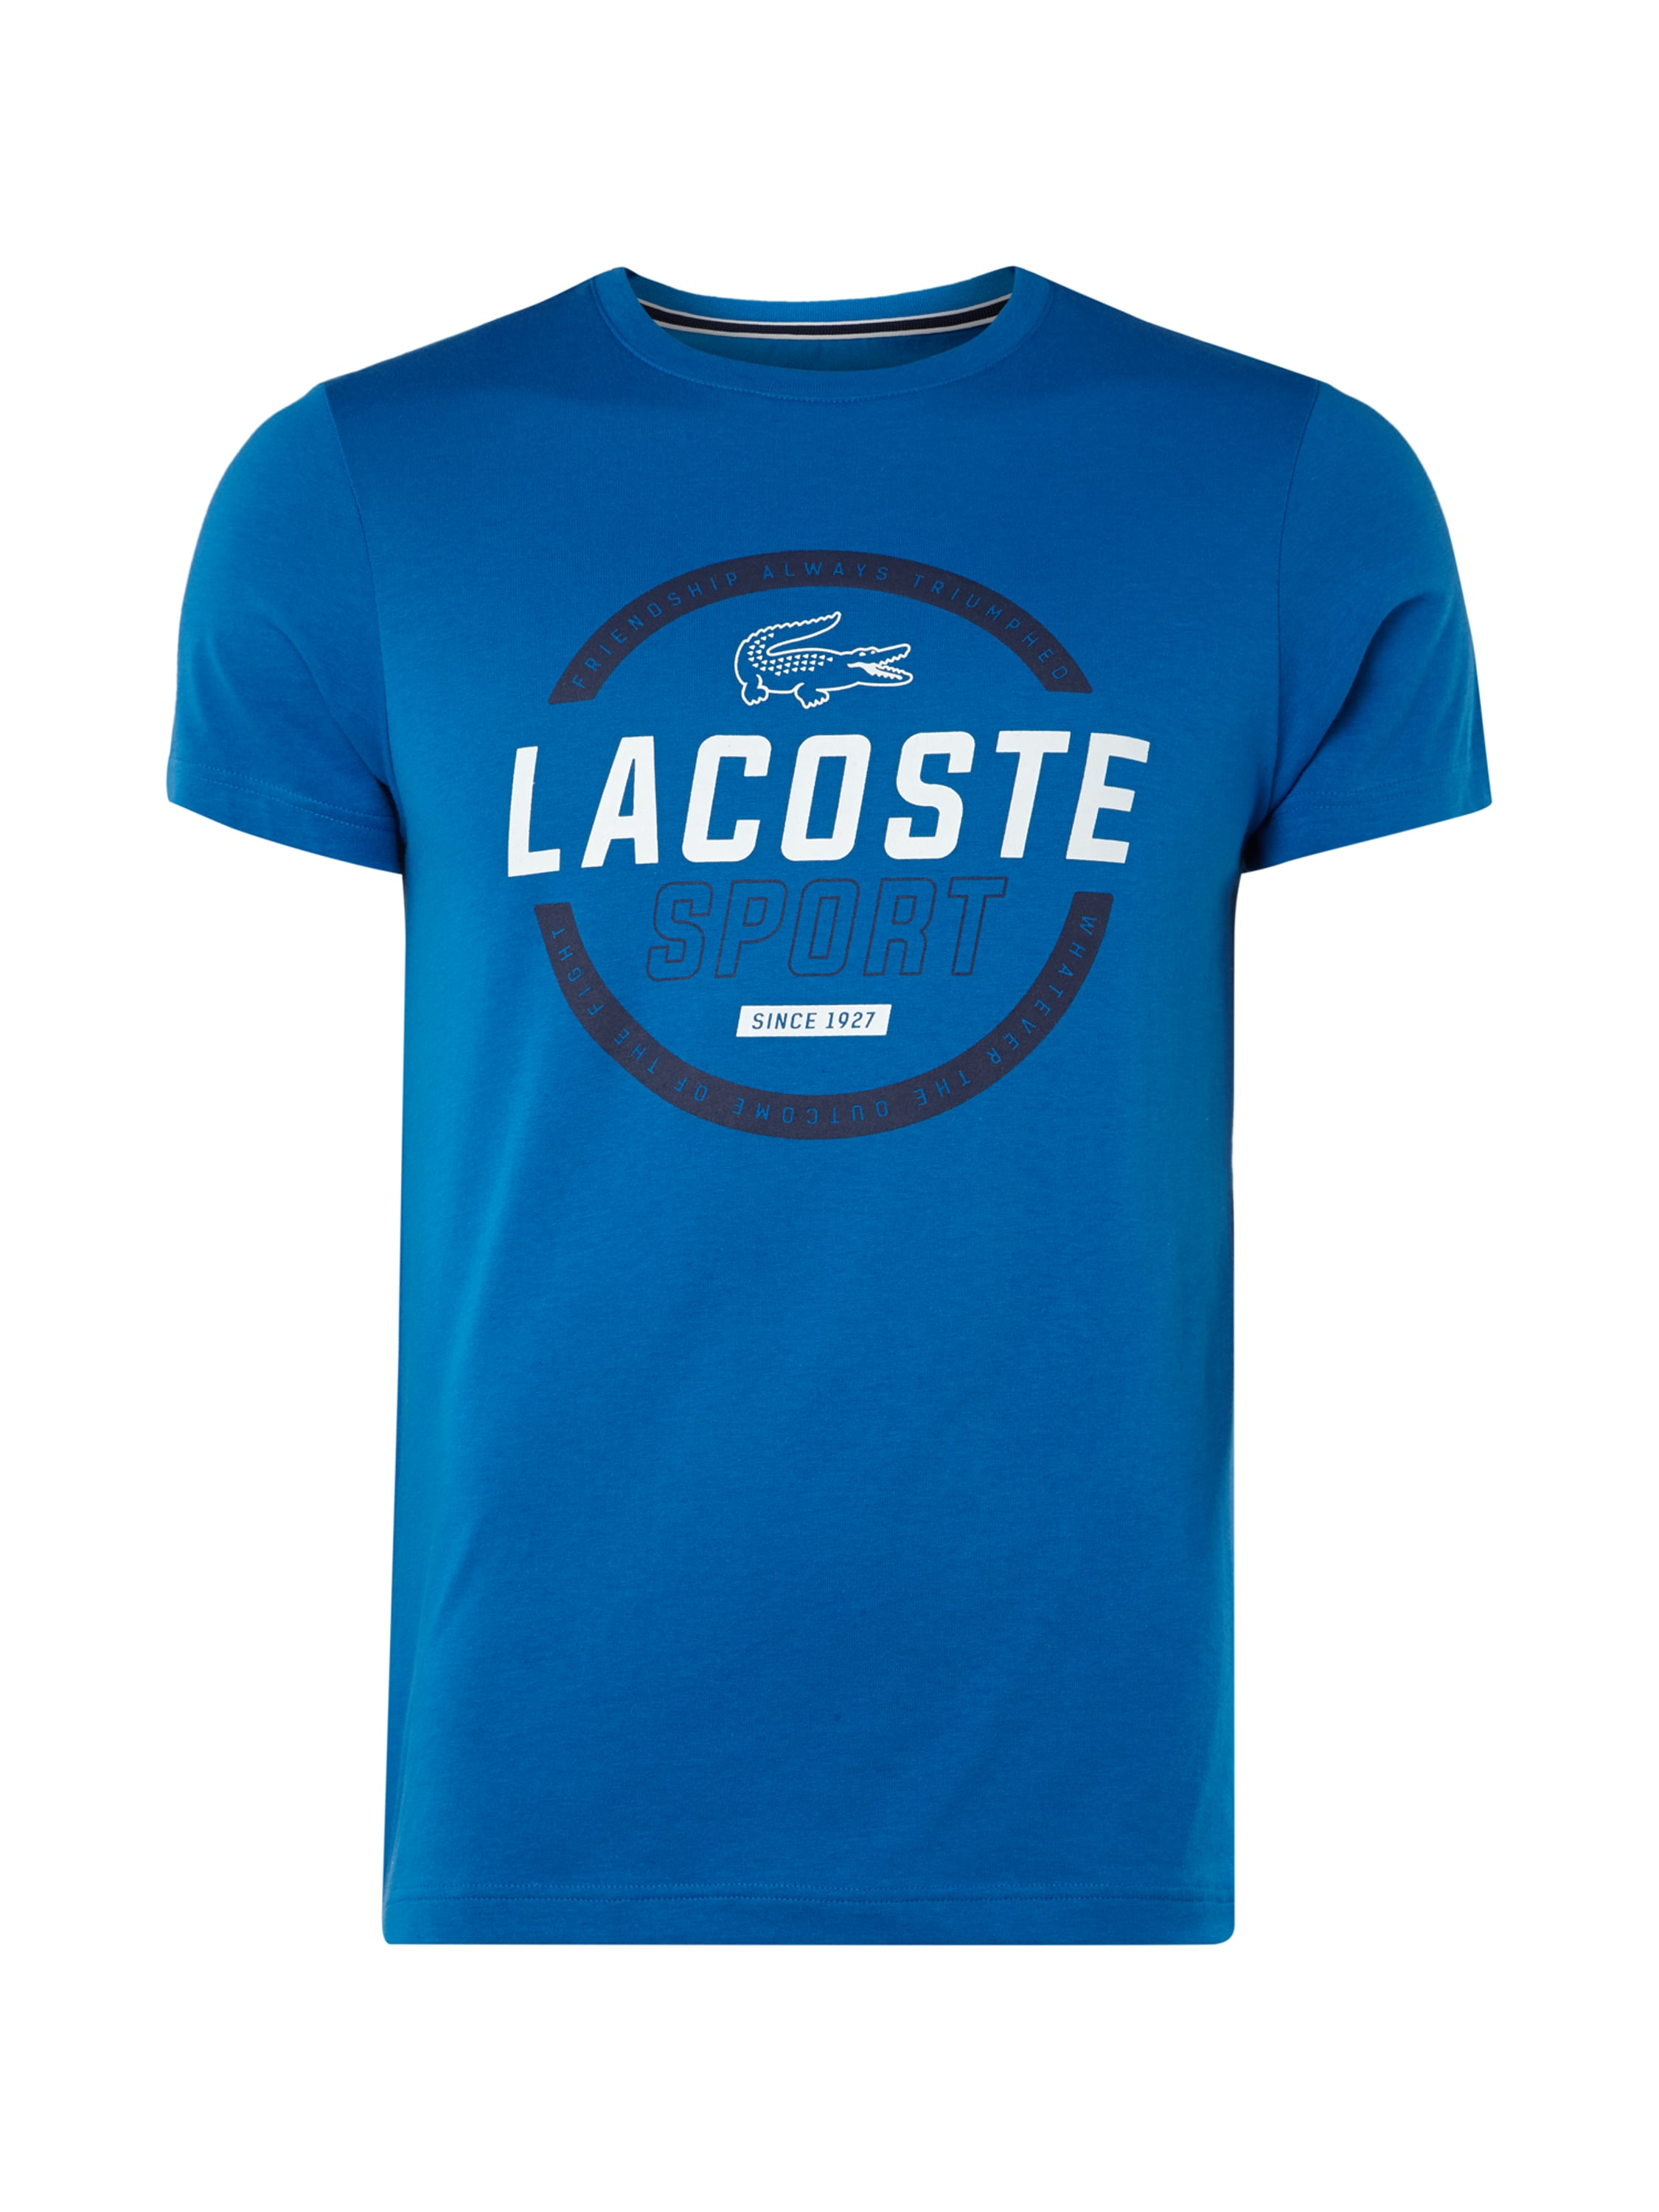 Lacoste t shirts online shopping in india